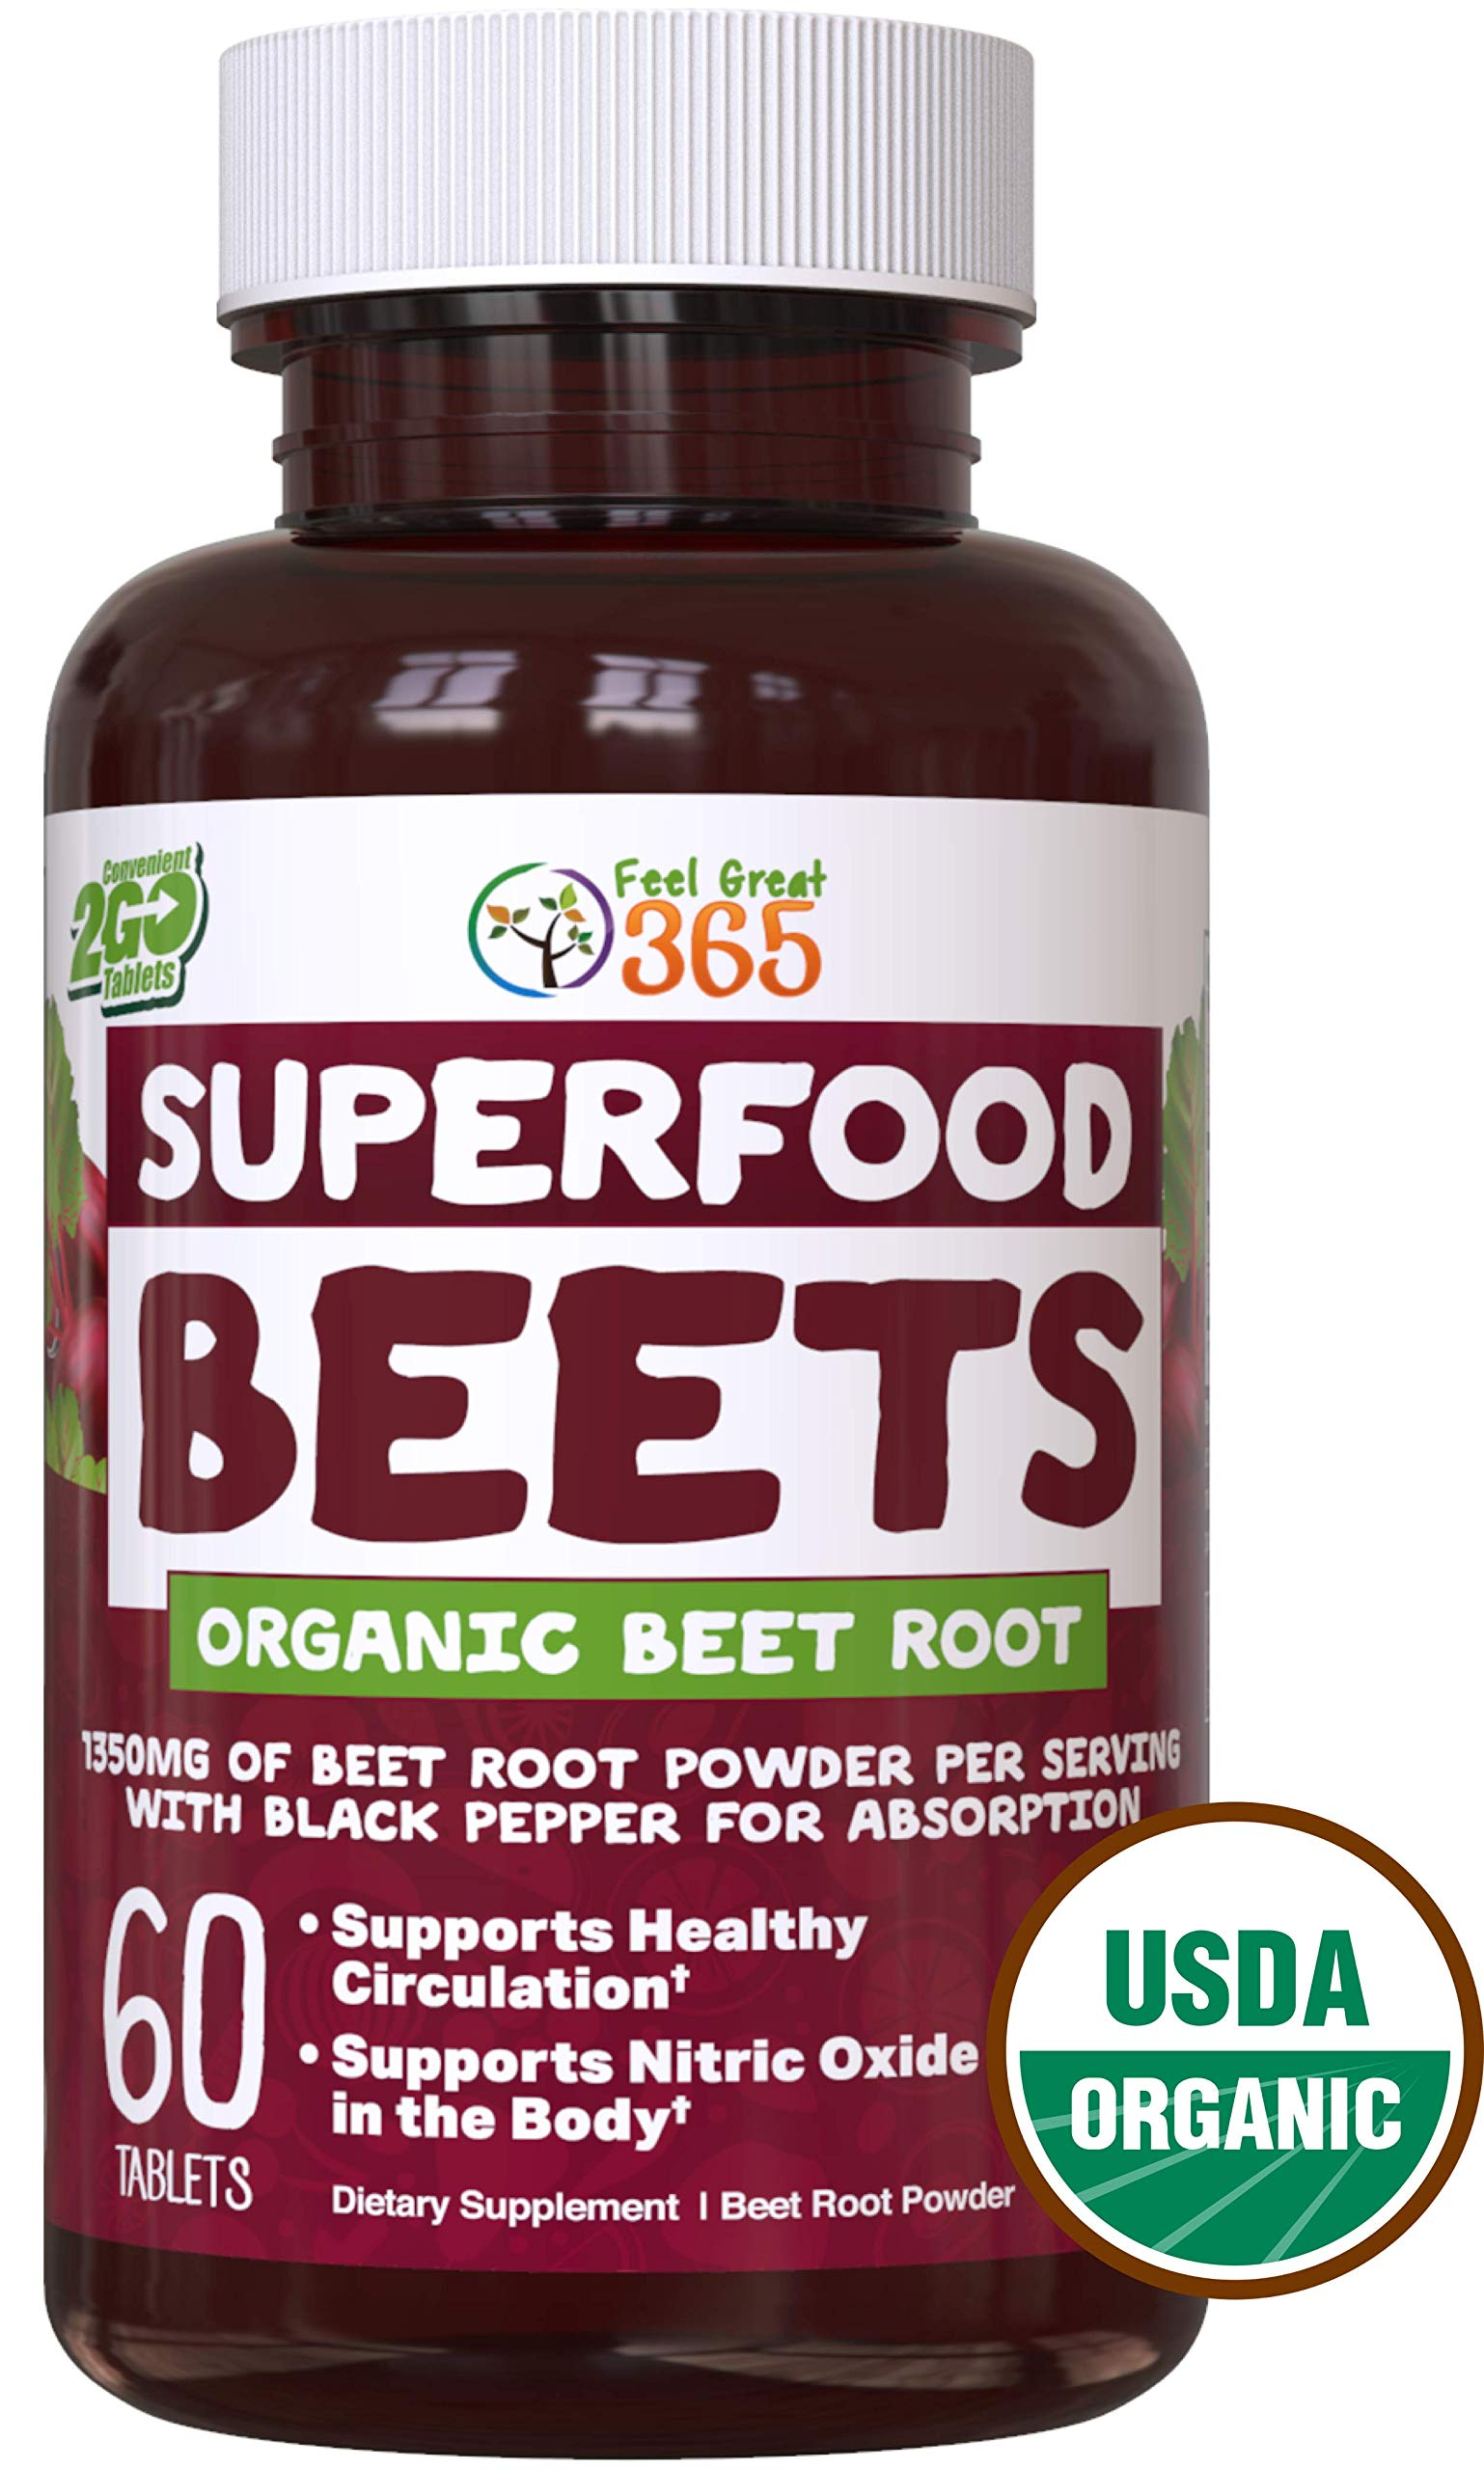 USDA Organic Superfood Beet Root Powder by Feel Great 365 | Beetroot Nitric Oxide Supplement with Natural Nitrates for Increased Natural Energy* | Non-GMO and Vegetarian Organic Circulation Tablets* by Feel Great 365